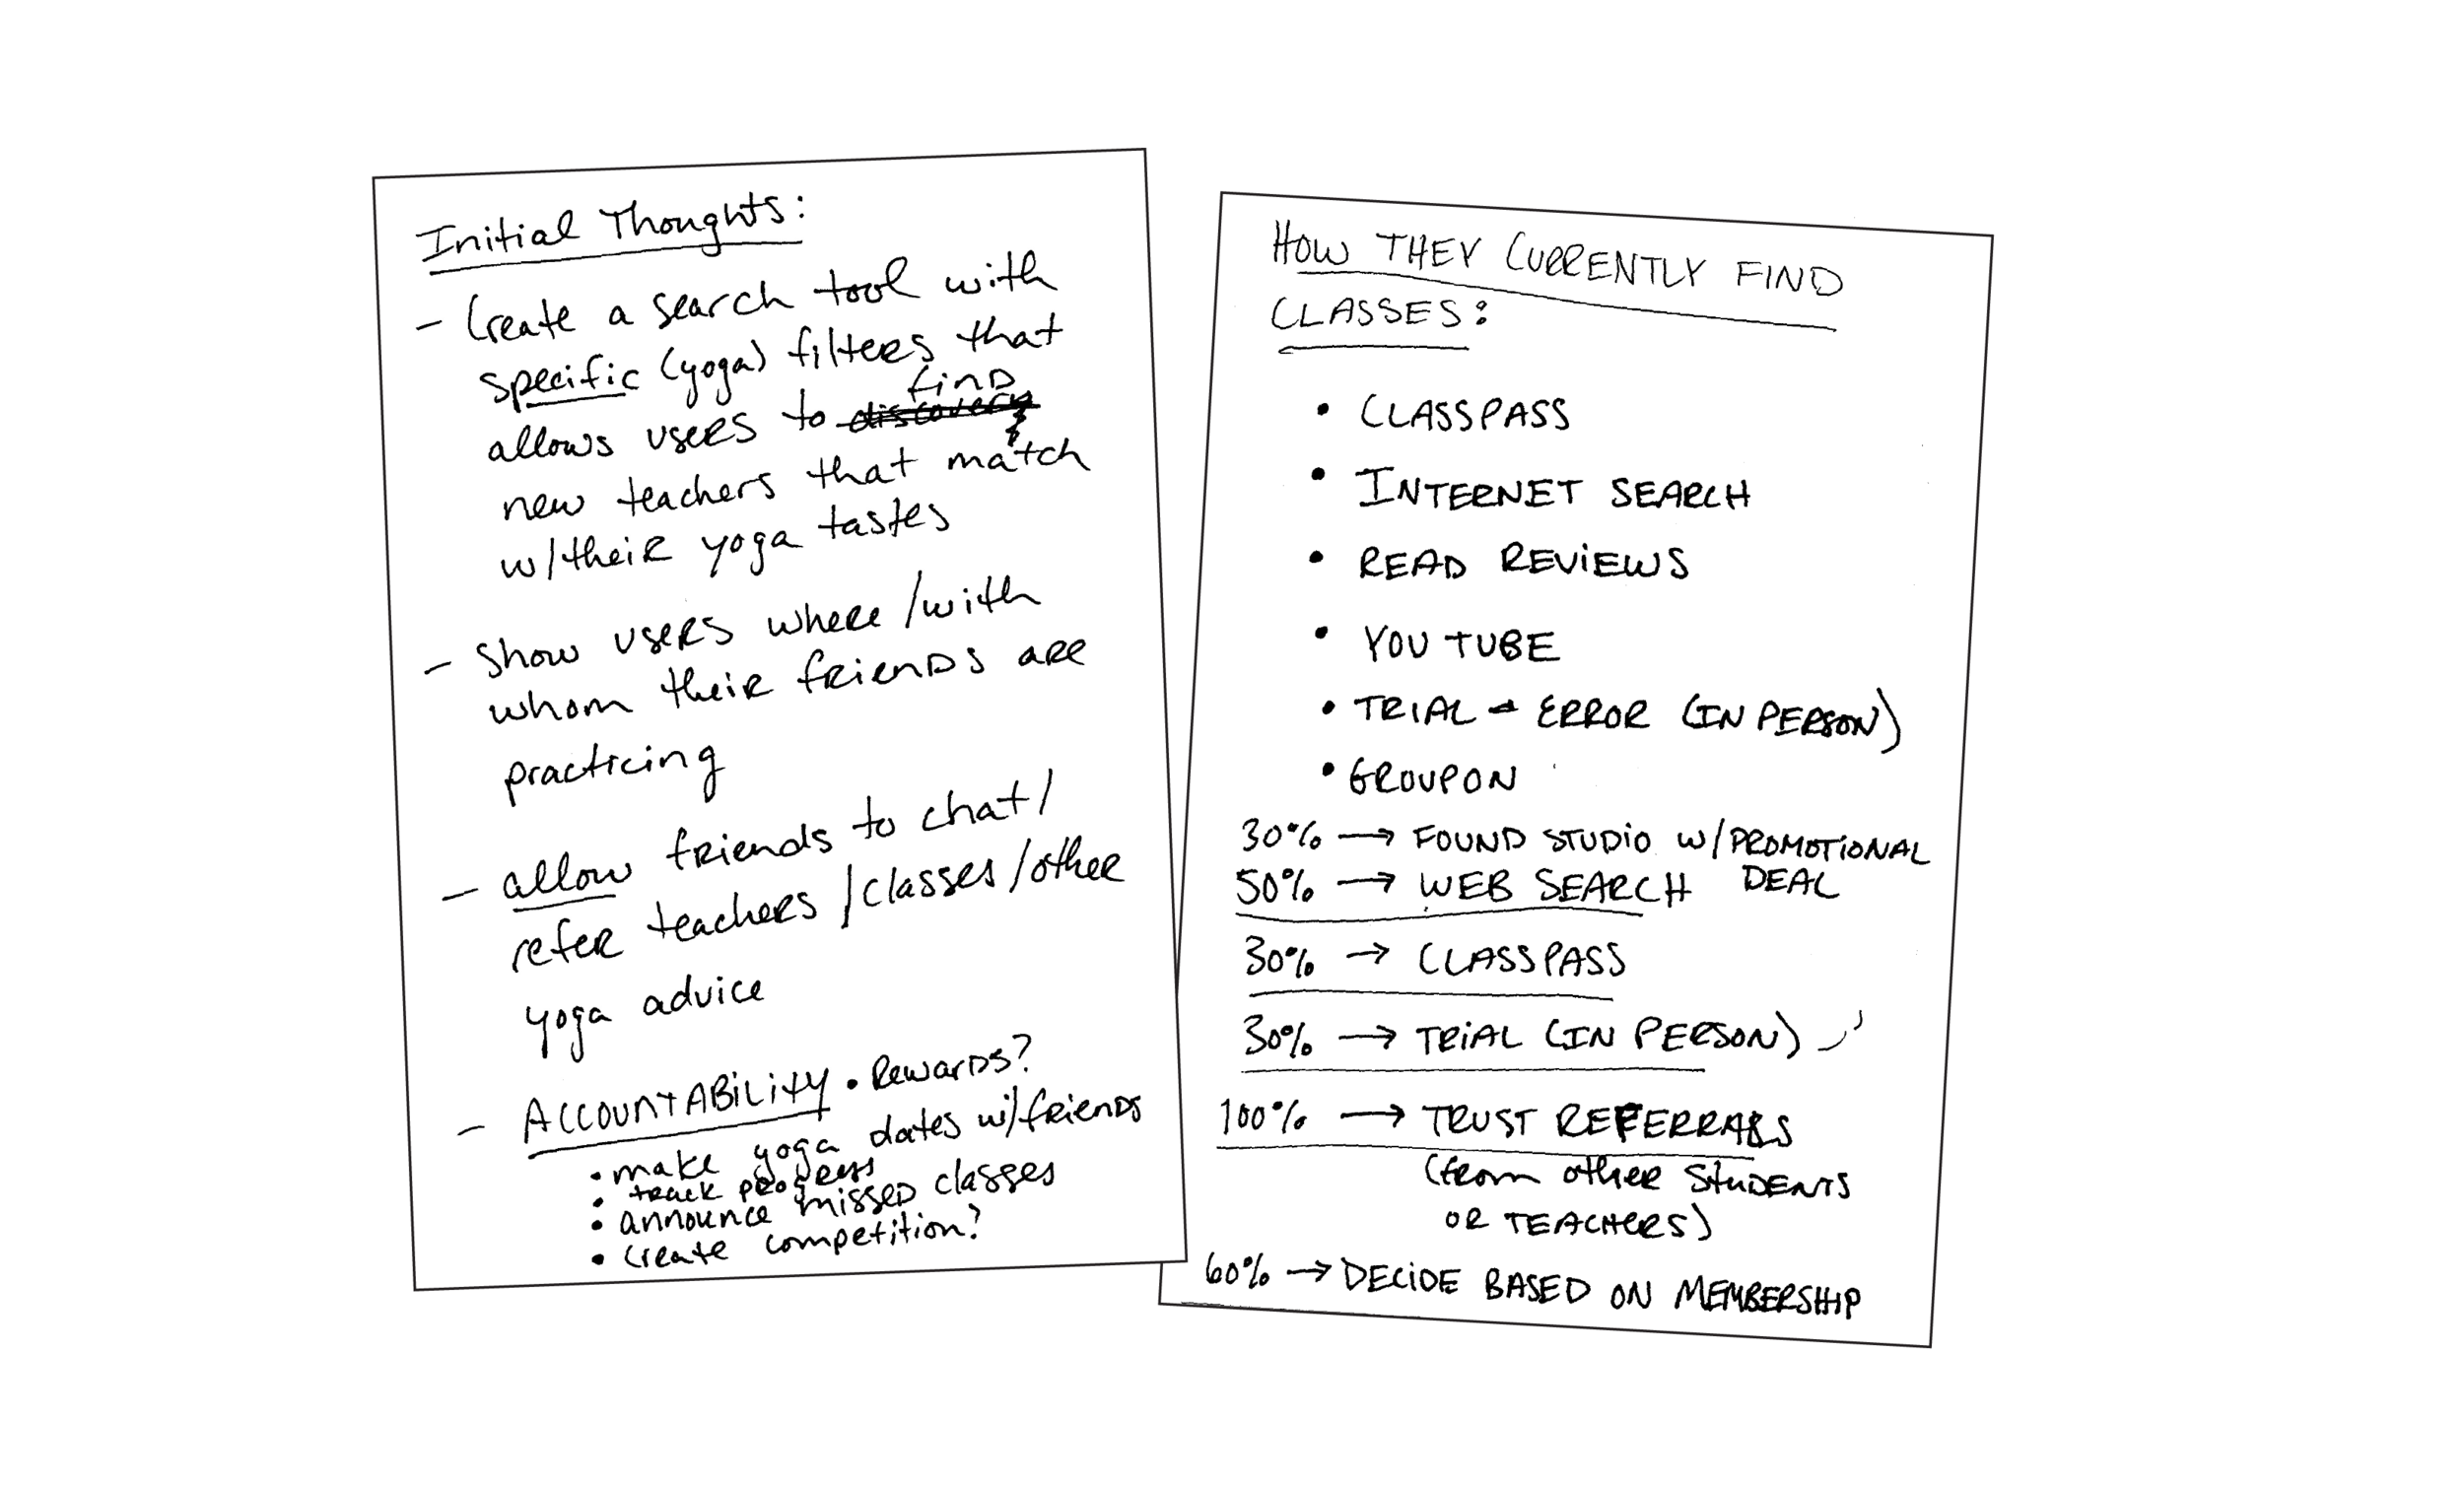 Thoughs&Assumptions_INITIAL THOUGHTS.png